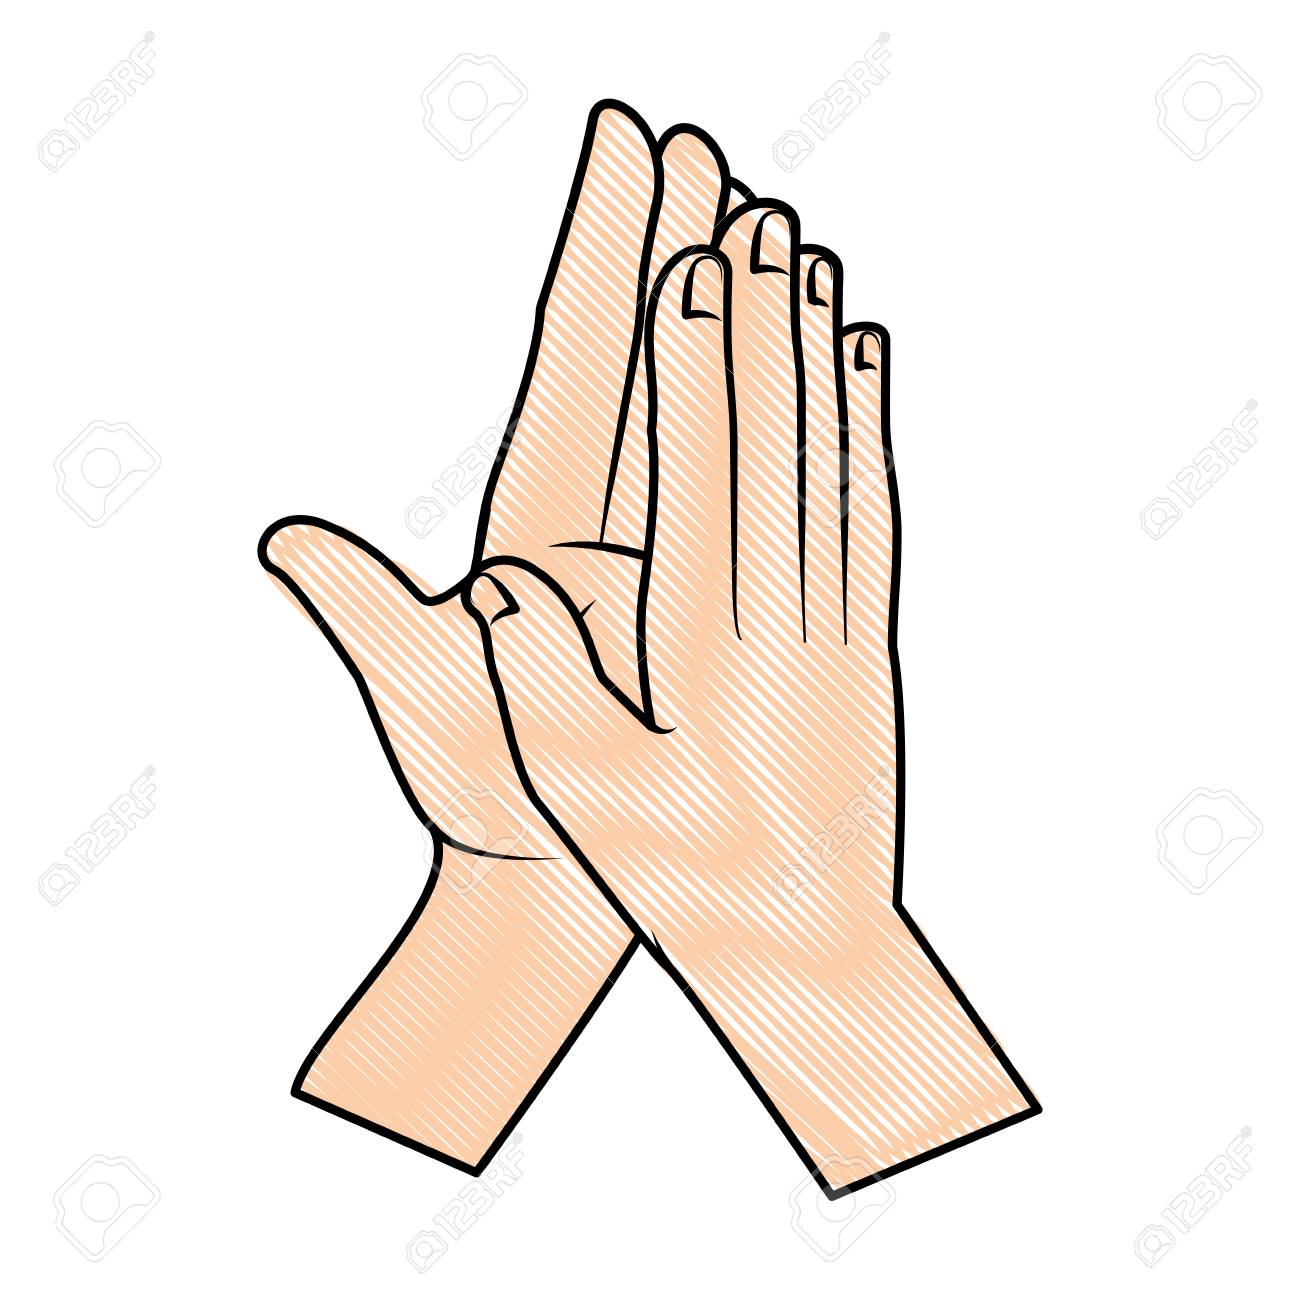 hands applauding isolated icon vector illustration design - 90507756